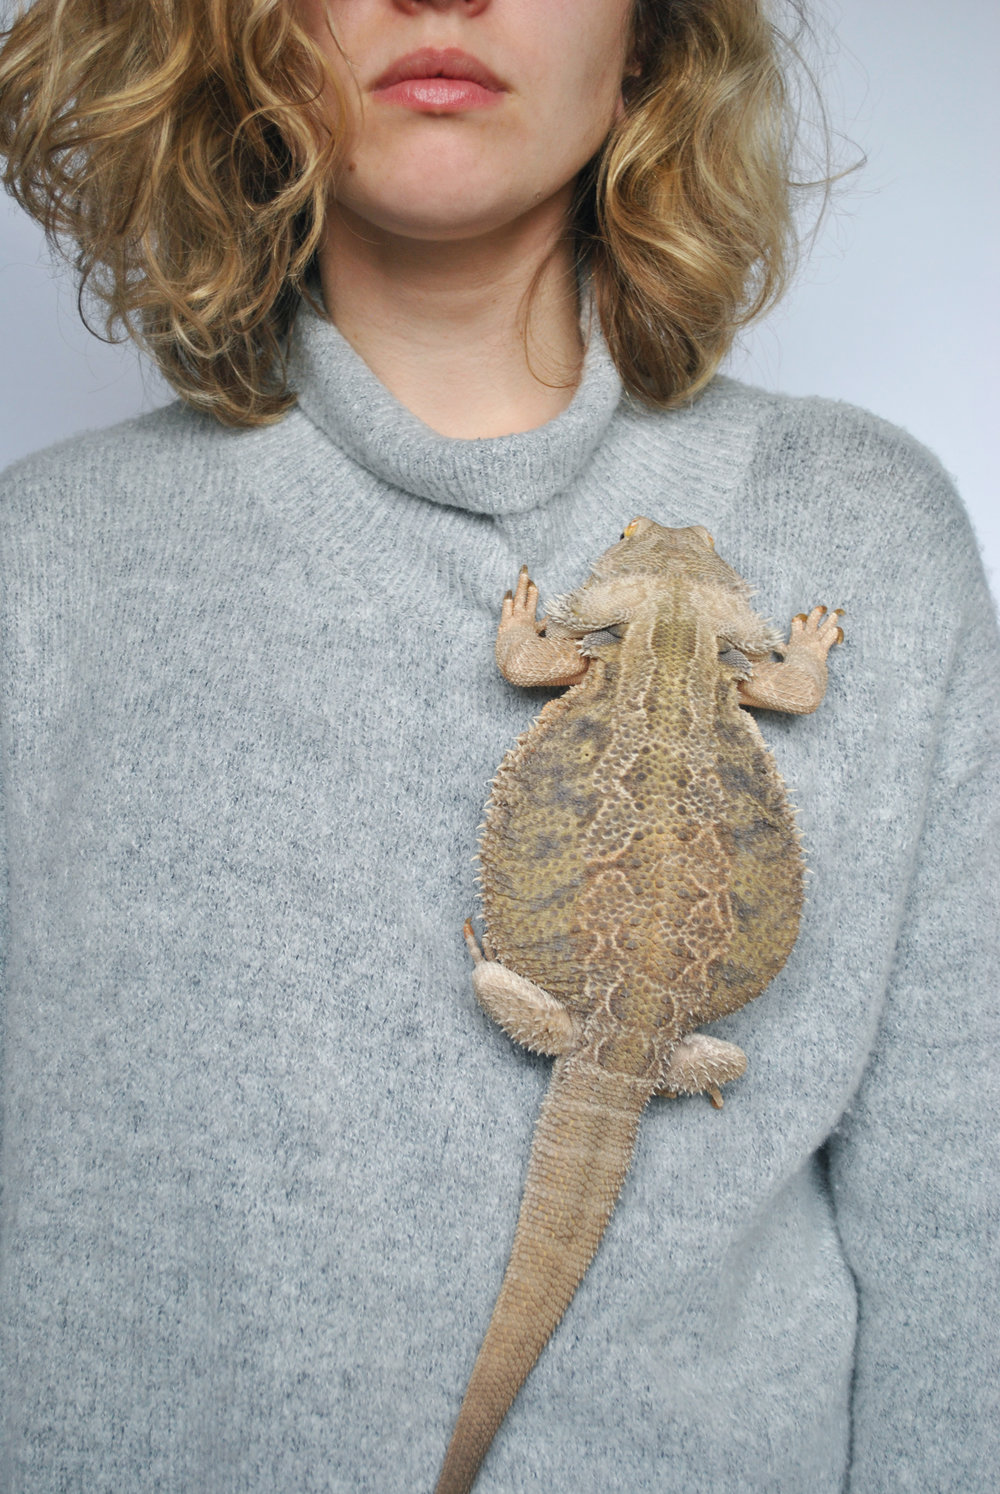 Marley - The Bearded Dragon